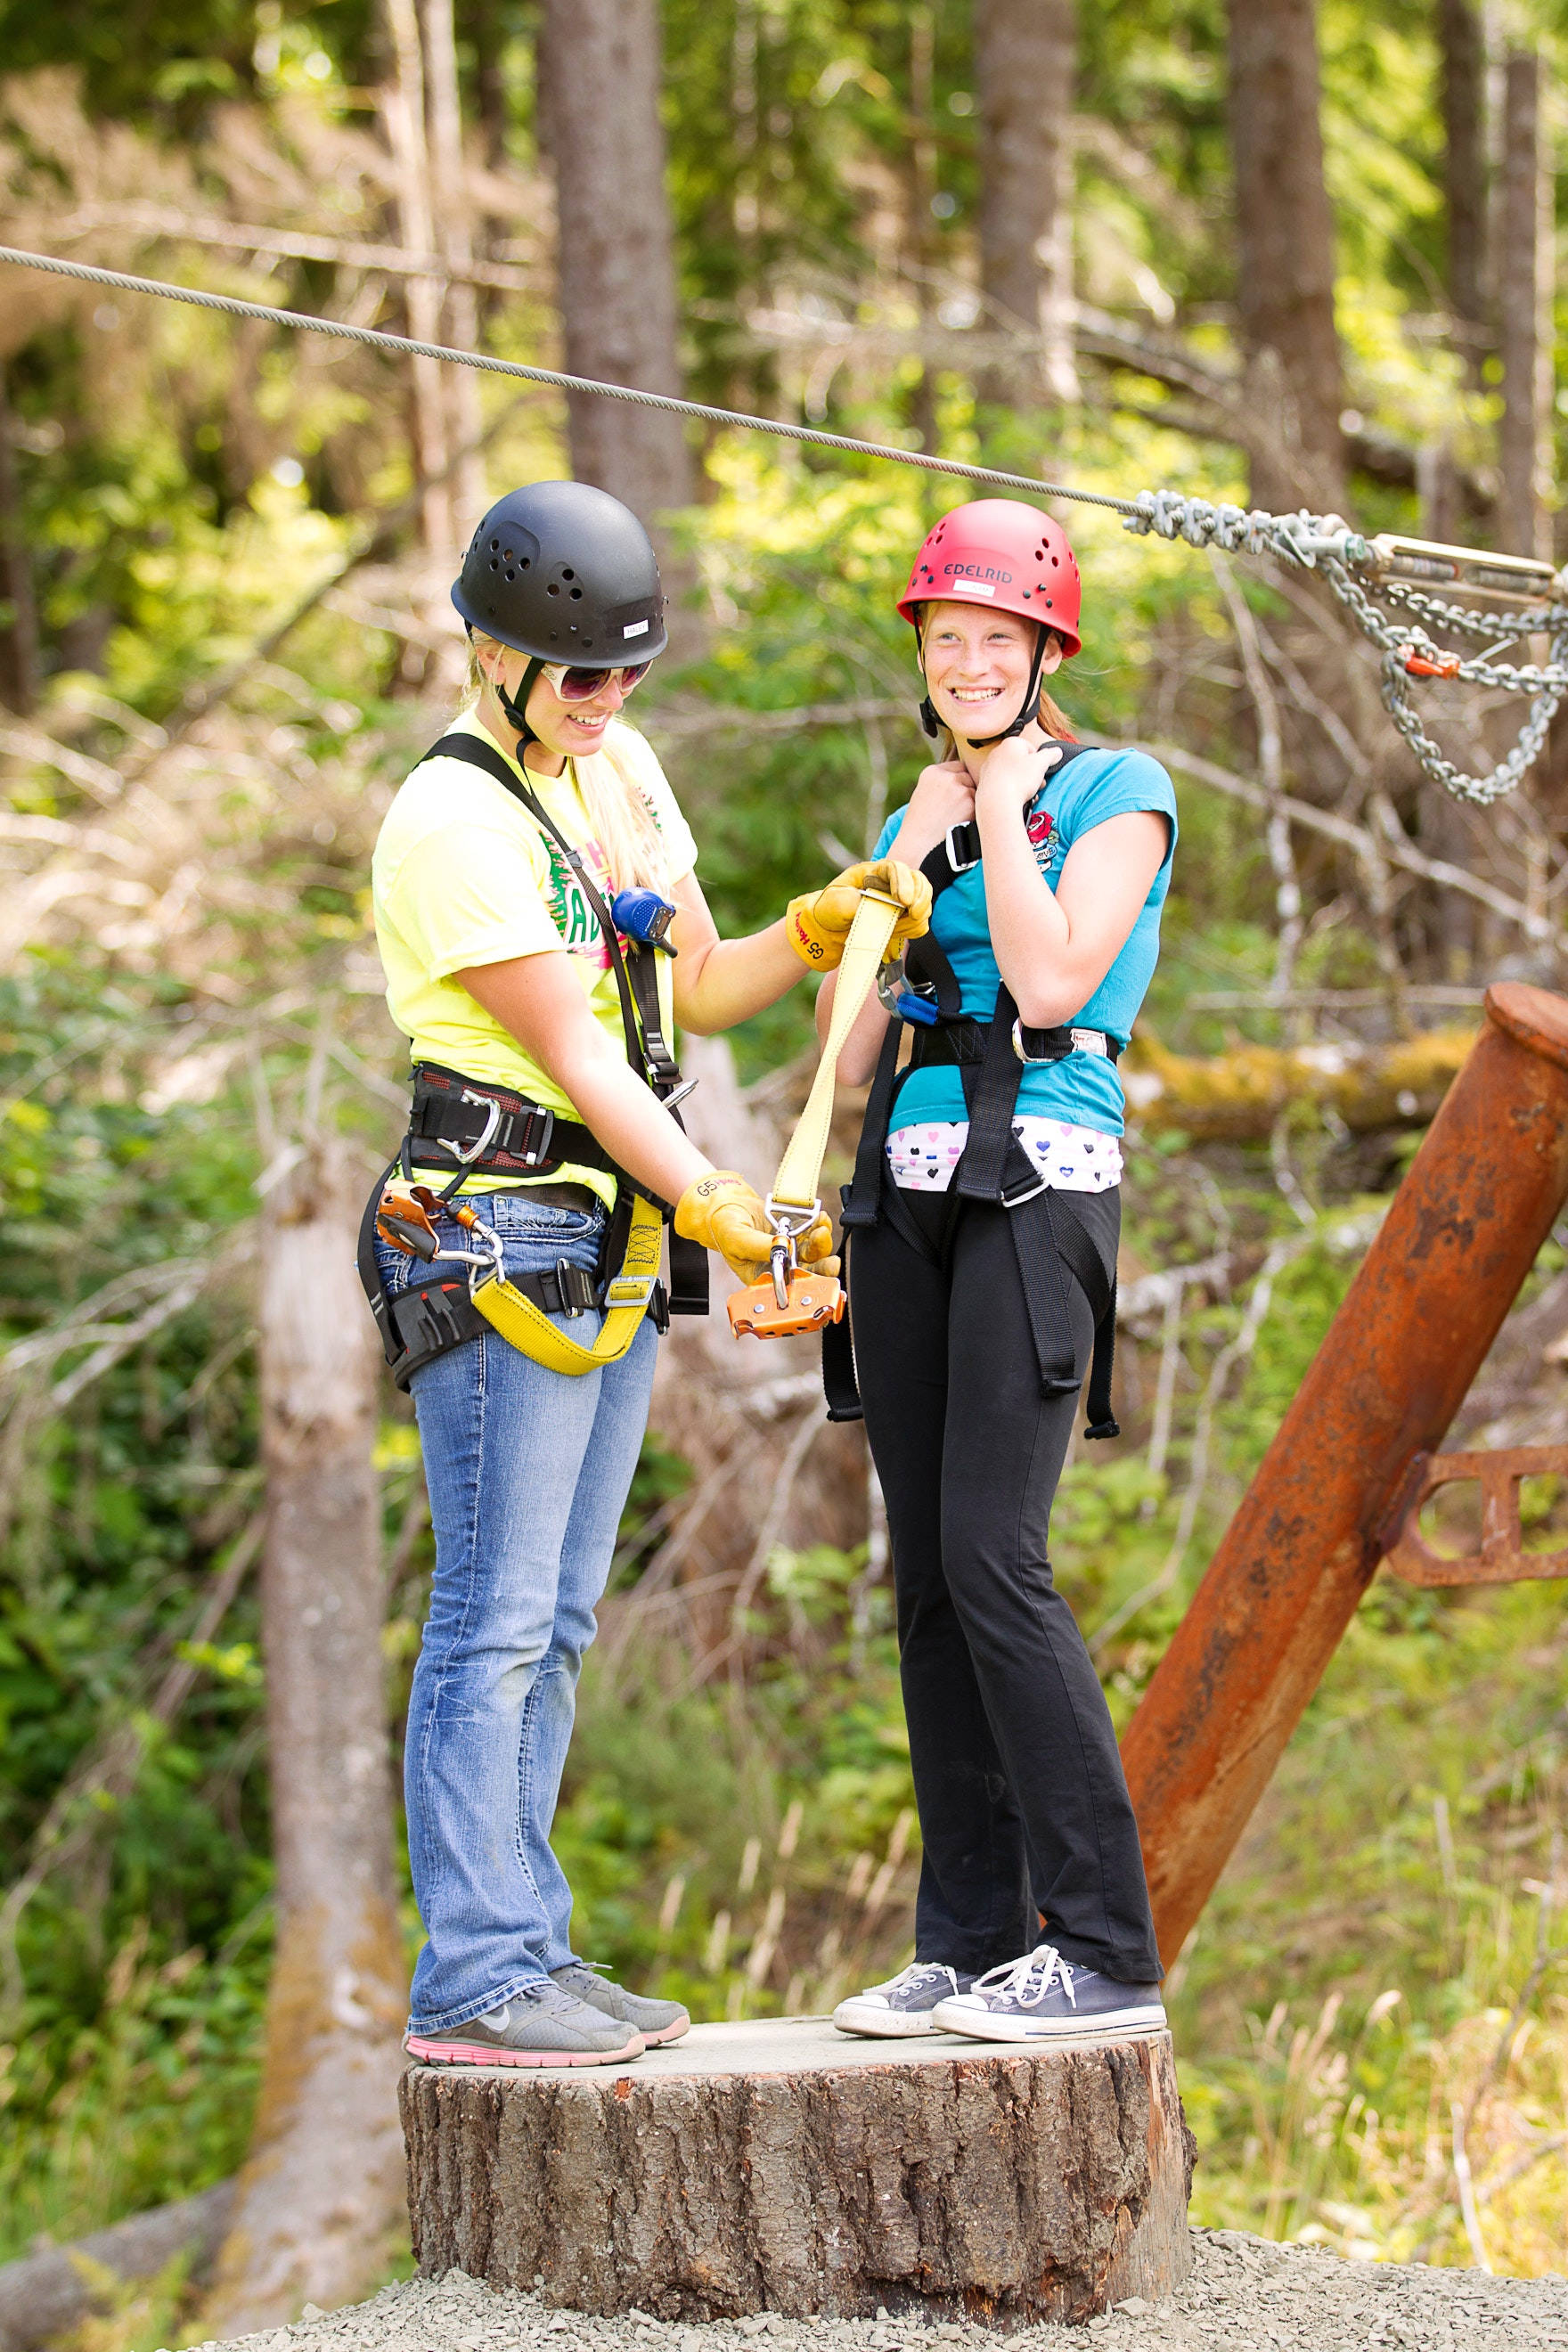 A guide helps a girl get ready to zip-line